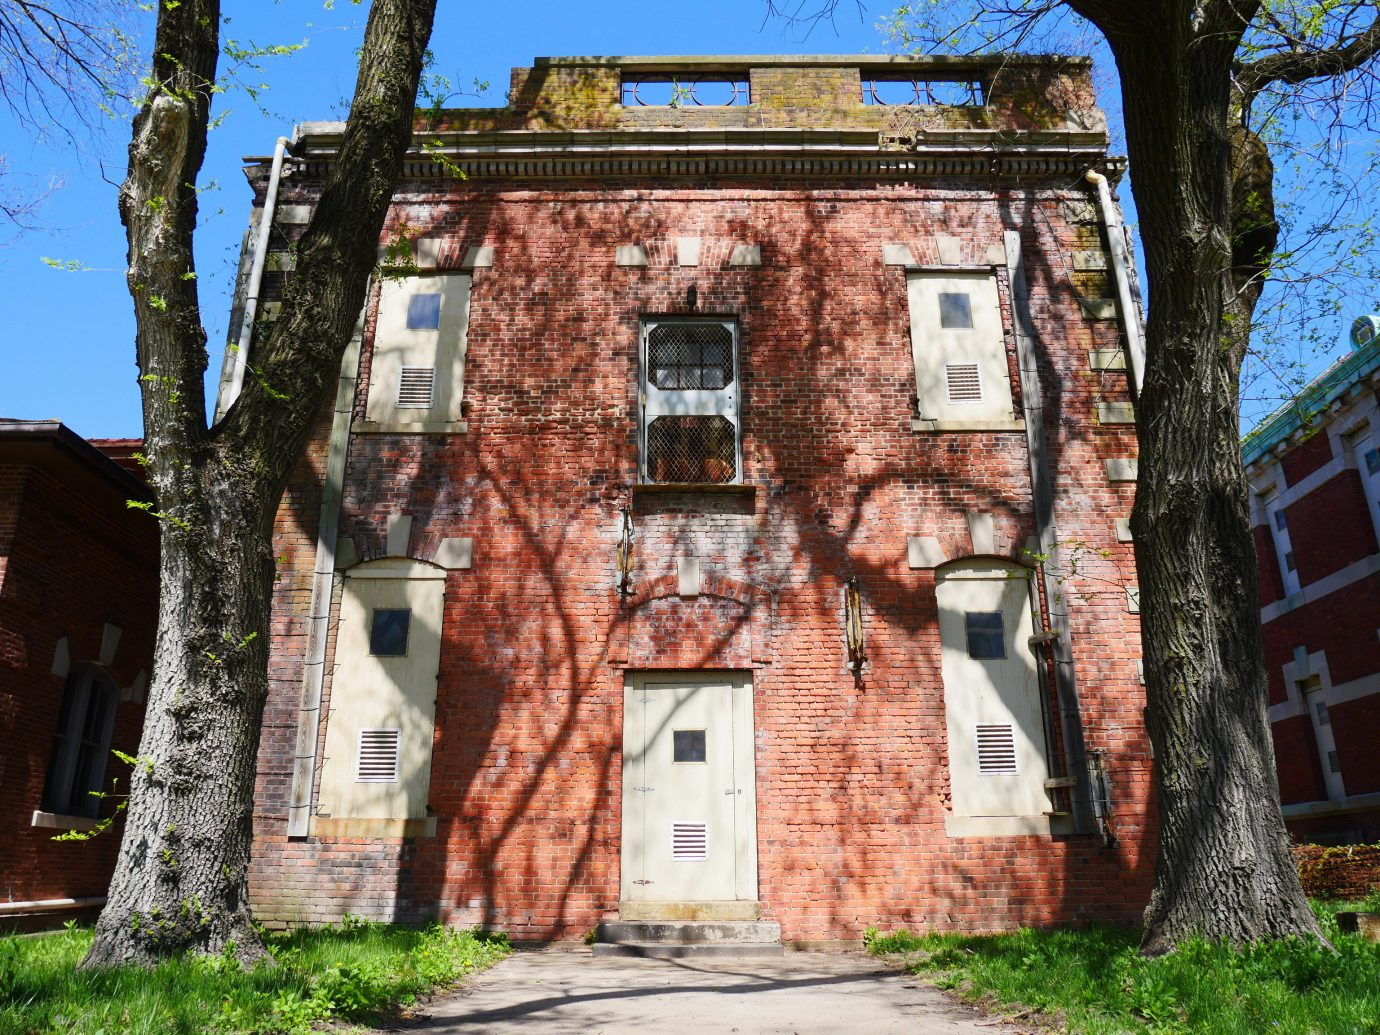 Offbeat tree outdoor building Town neighbourhood house brick urban area Village tourism residential area estate Ruins facade cottage chapel alley